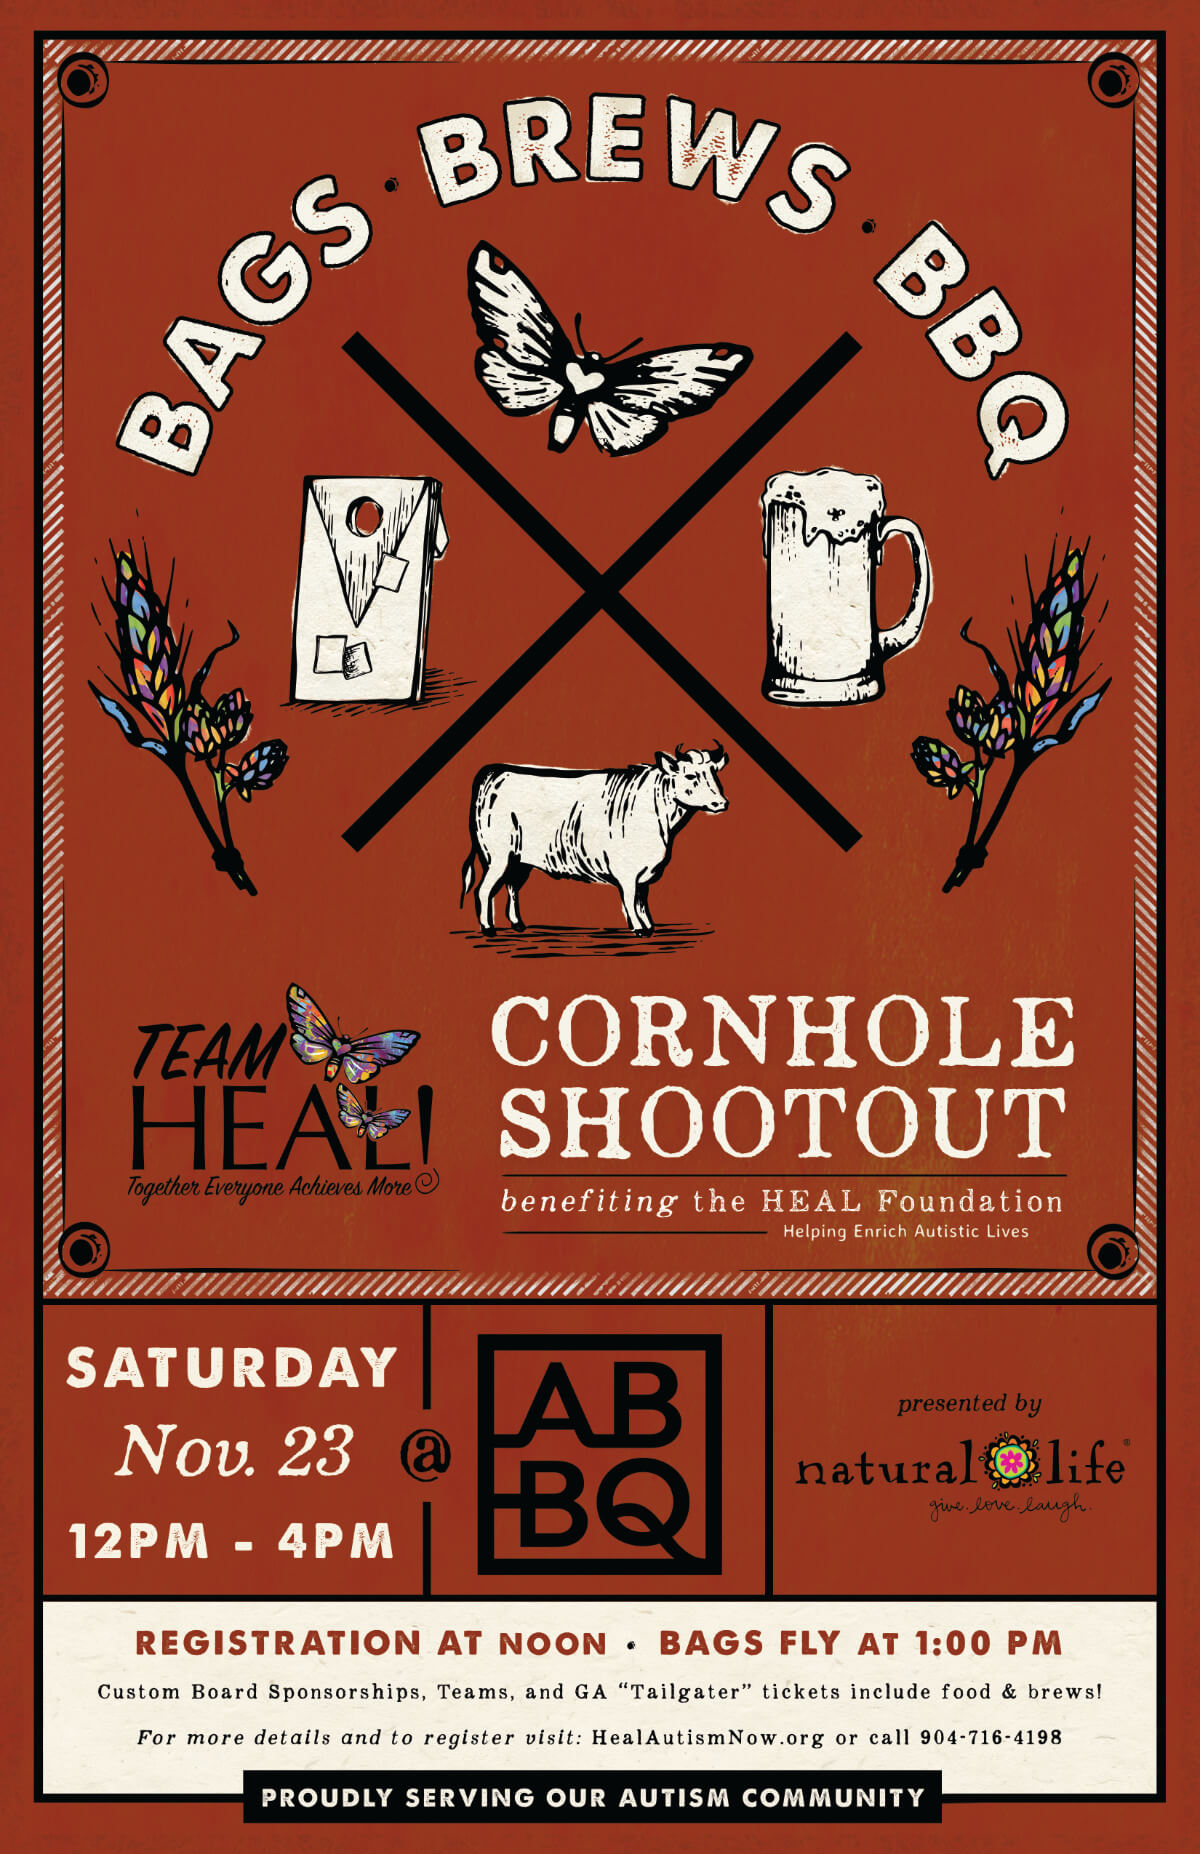 TEAM HEAL Bags, Brews & BBQ Cornhole Shootout